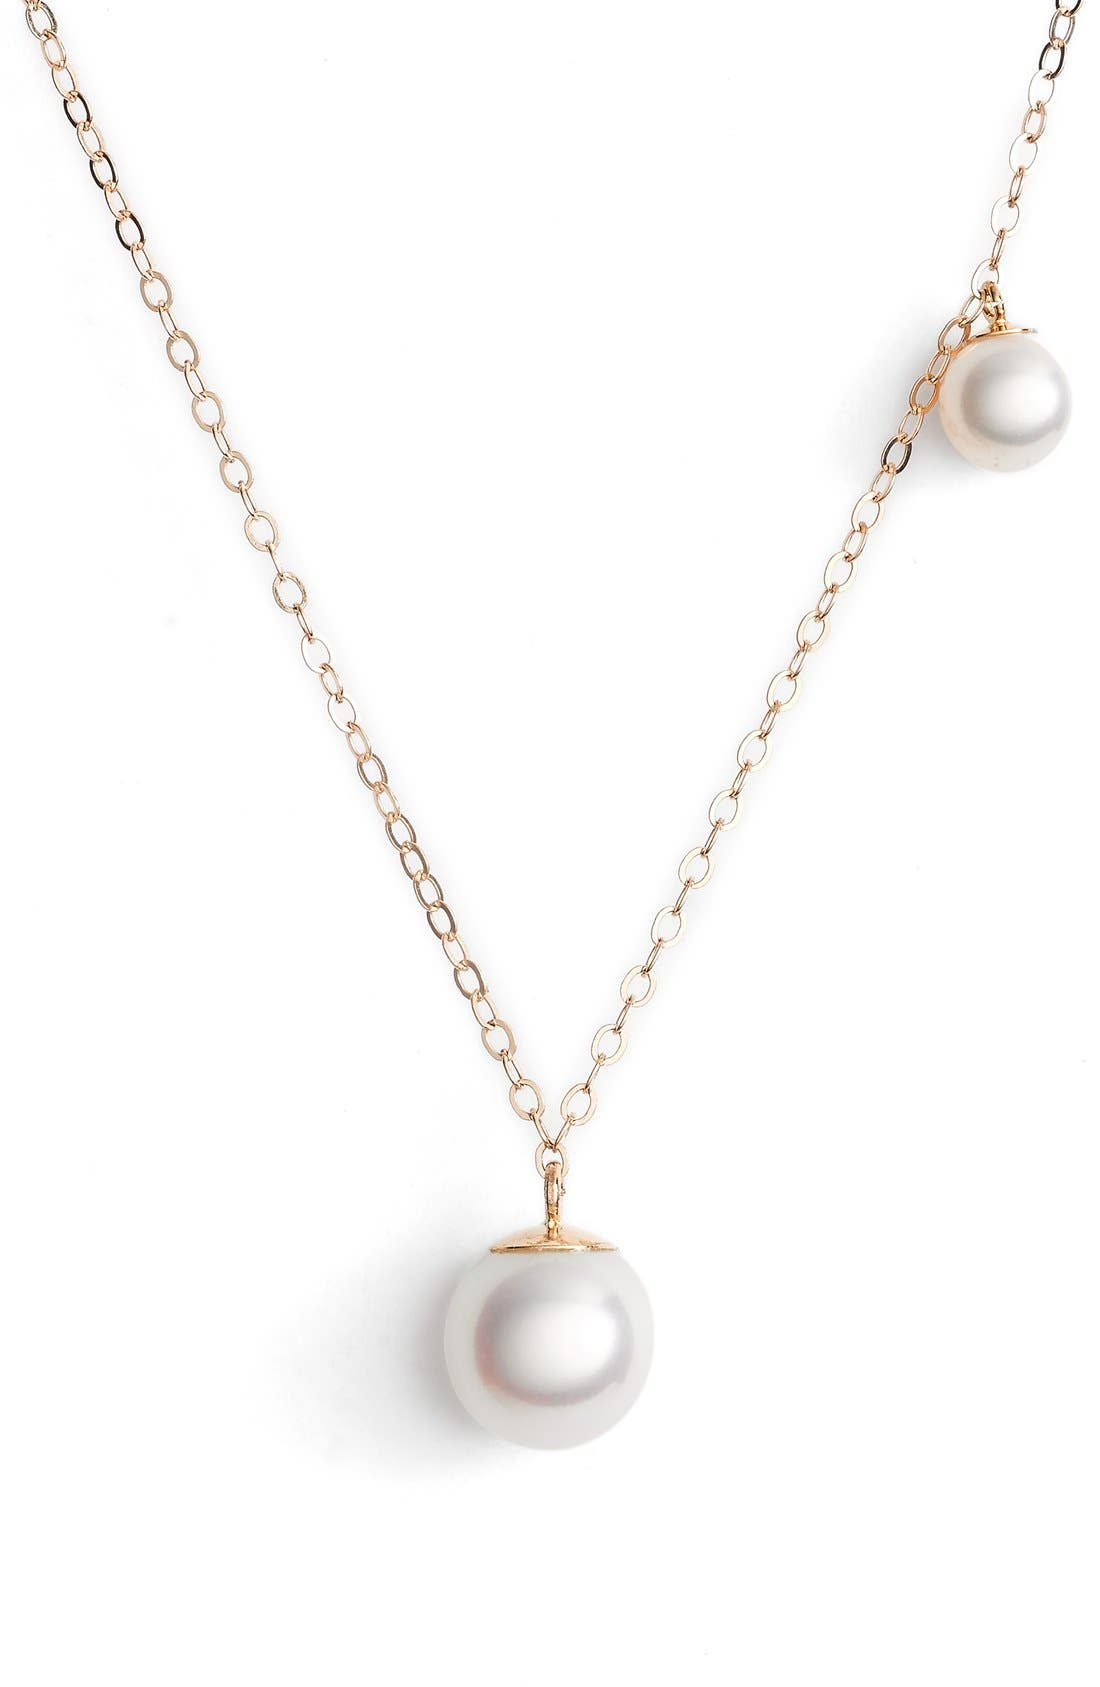 Poppy Finch Double Pearl Pendant Necklace